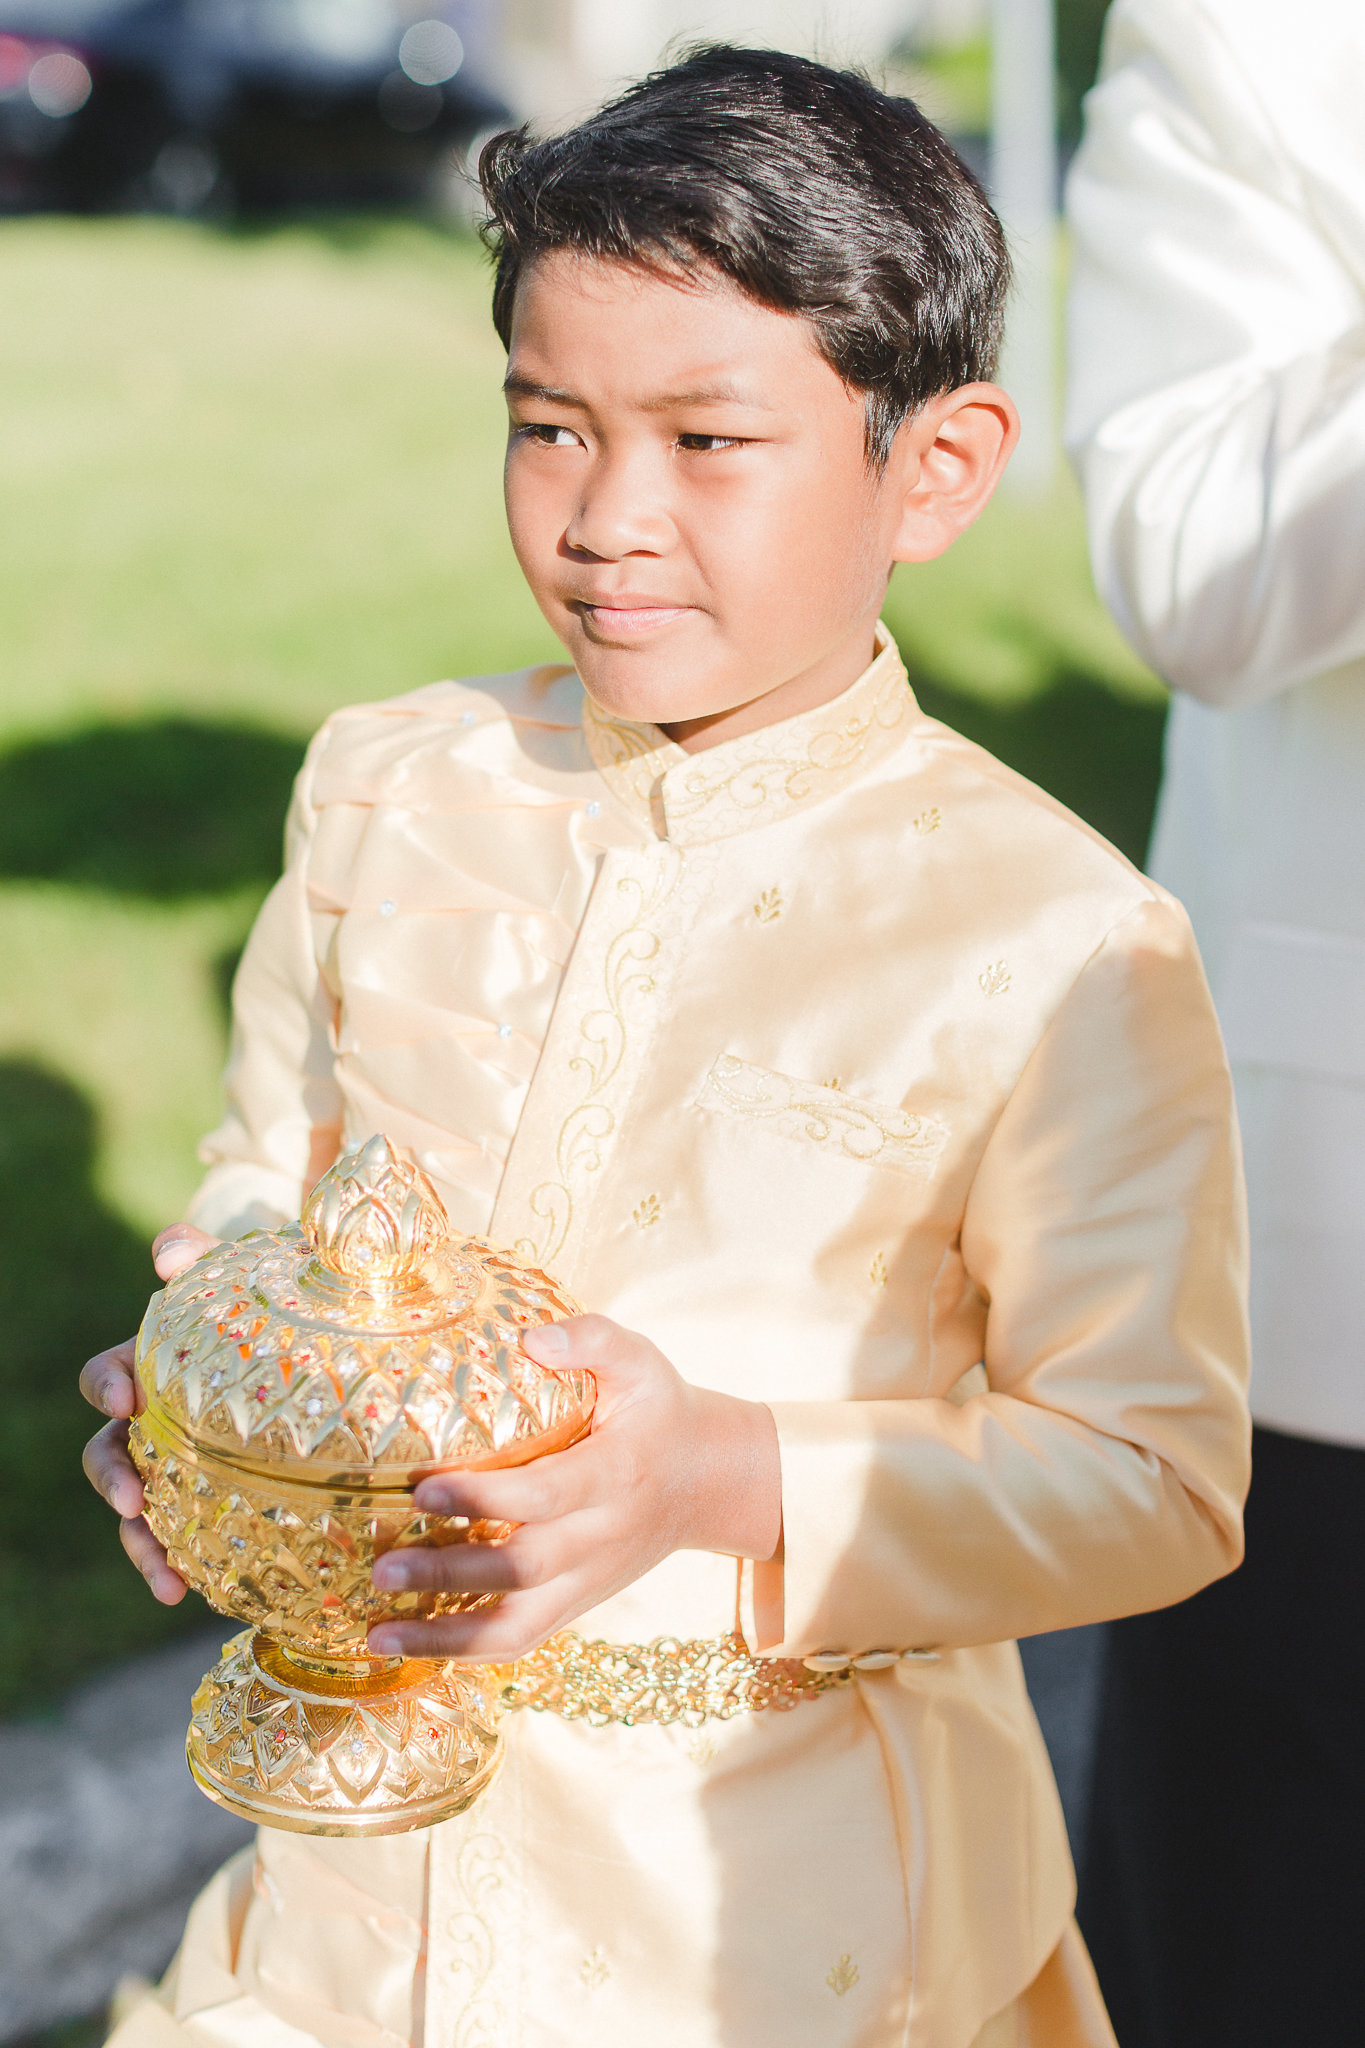 photographe-montreal-mariage-culturel-traditionnel-cambodgien-lisa-renault-photographie-traditional-cultural-cambodian-wedding-15